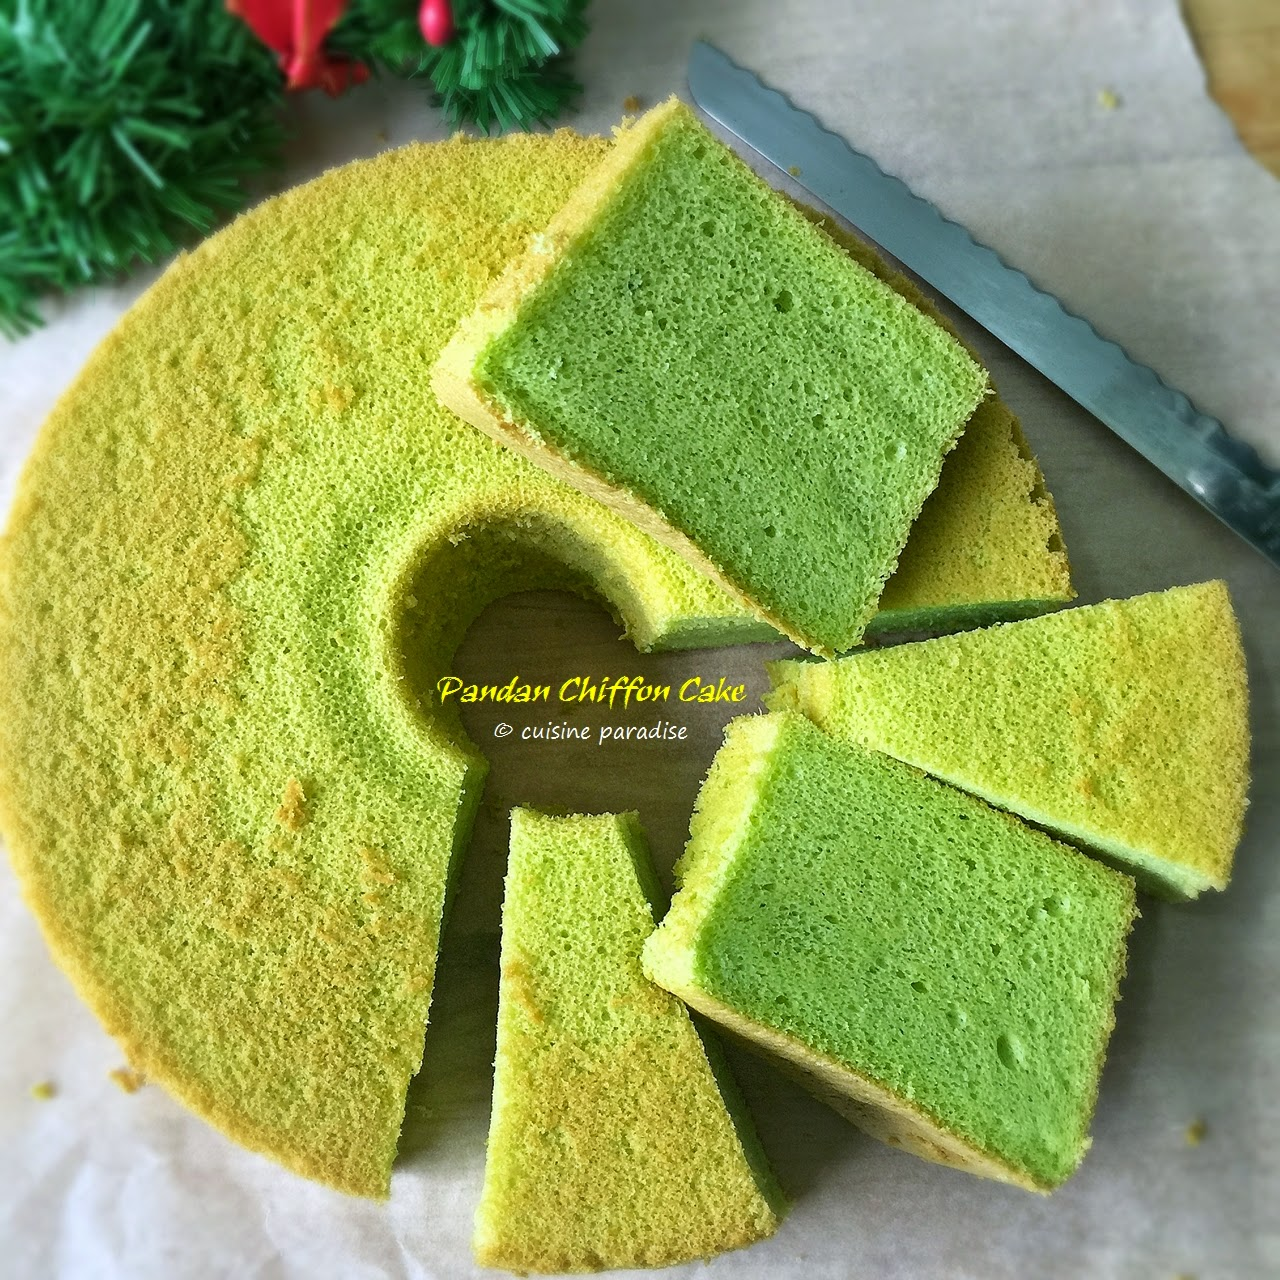 Cuisine Paradise Singapore Food Blog Recipes Reviews And Travel Recipes Pandan Chiffon